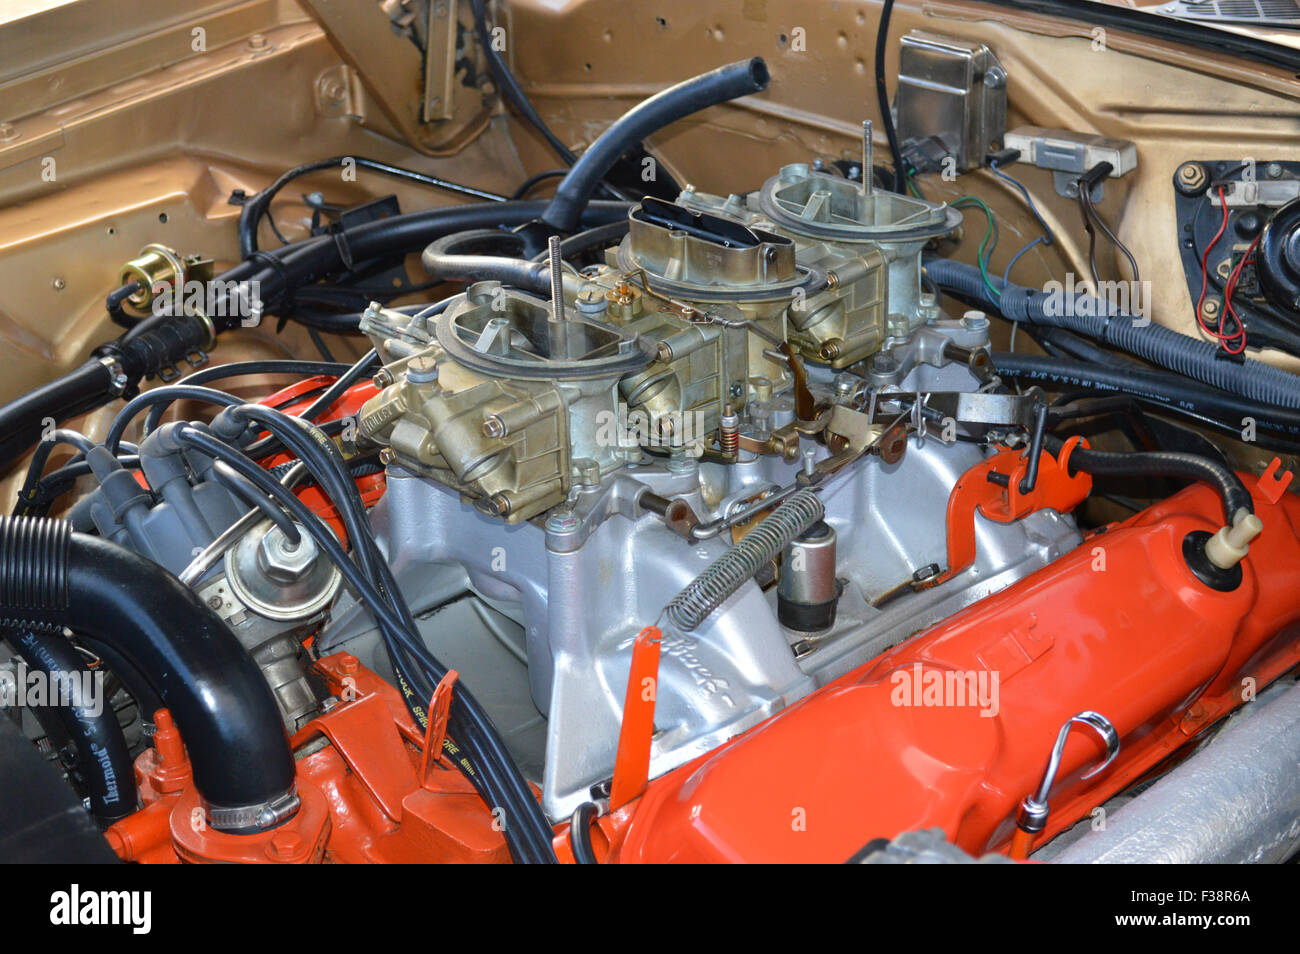 Mid Valley Dodge >> A Dodge 440 Six Pack engine on display at a car show Stock Photo: 88089634 - Alamy